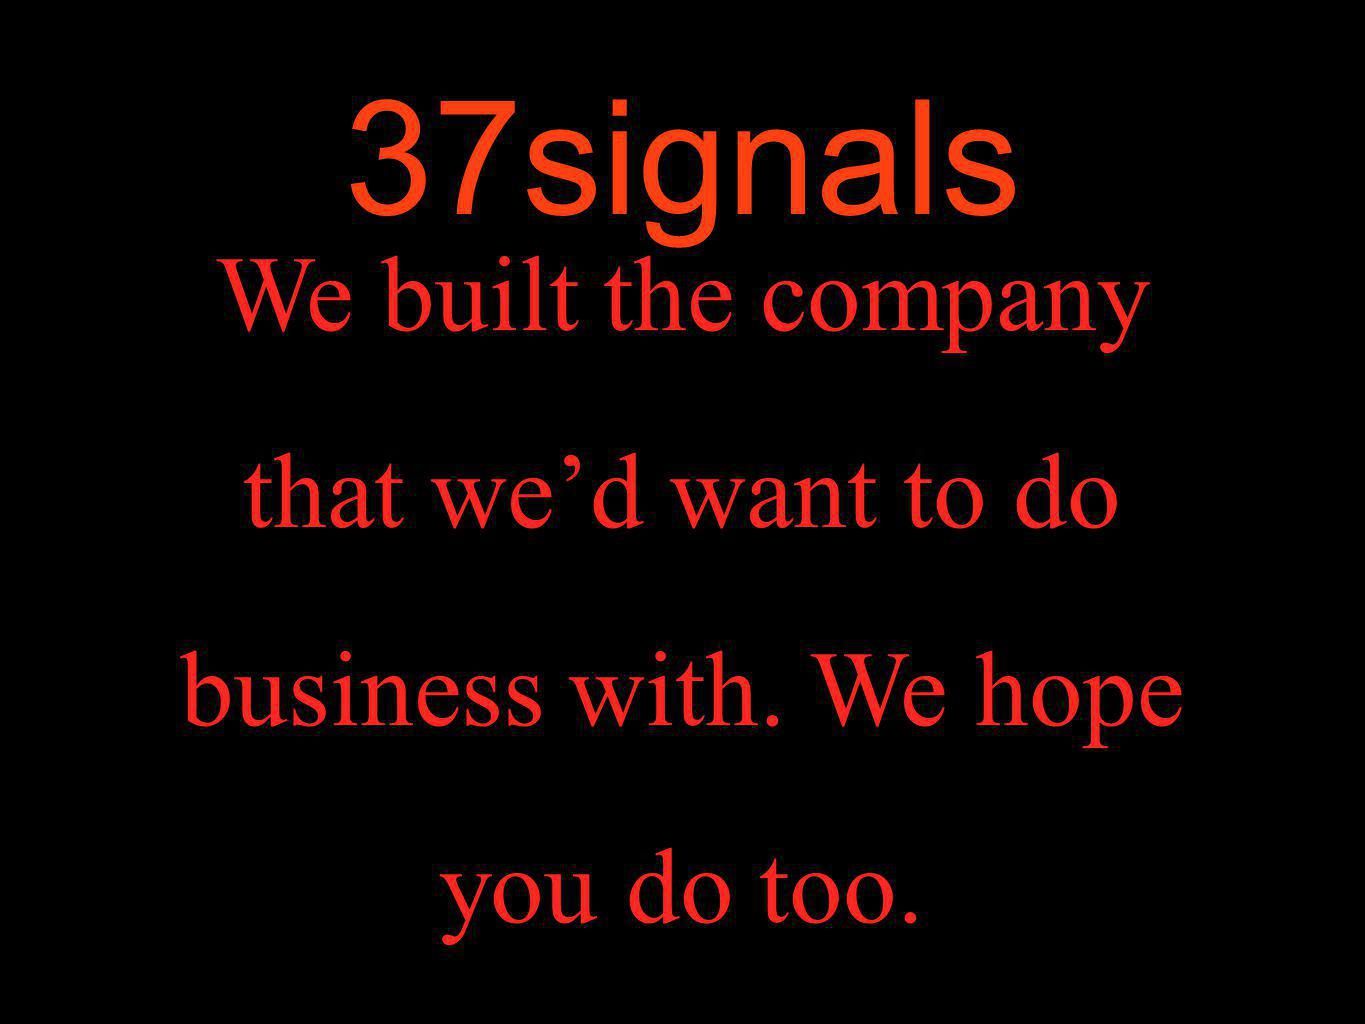 37signals We built the company that we'd want to do business with. We hope you do too.